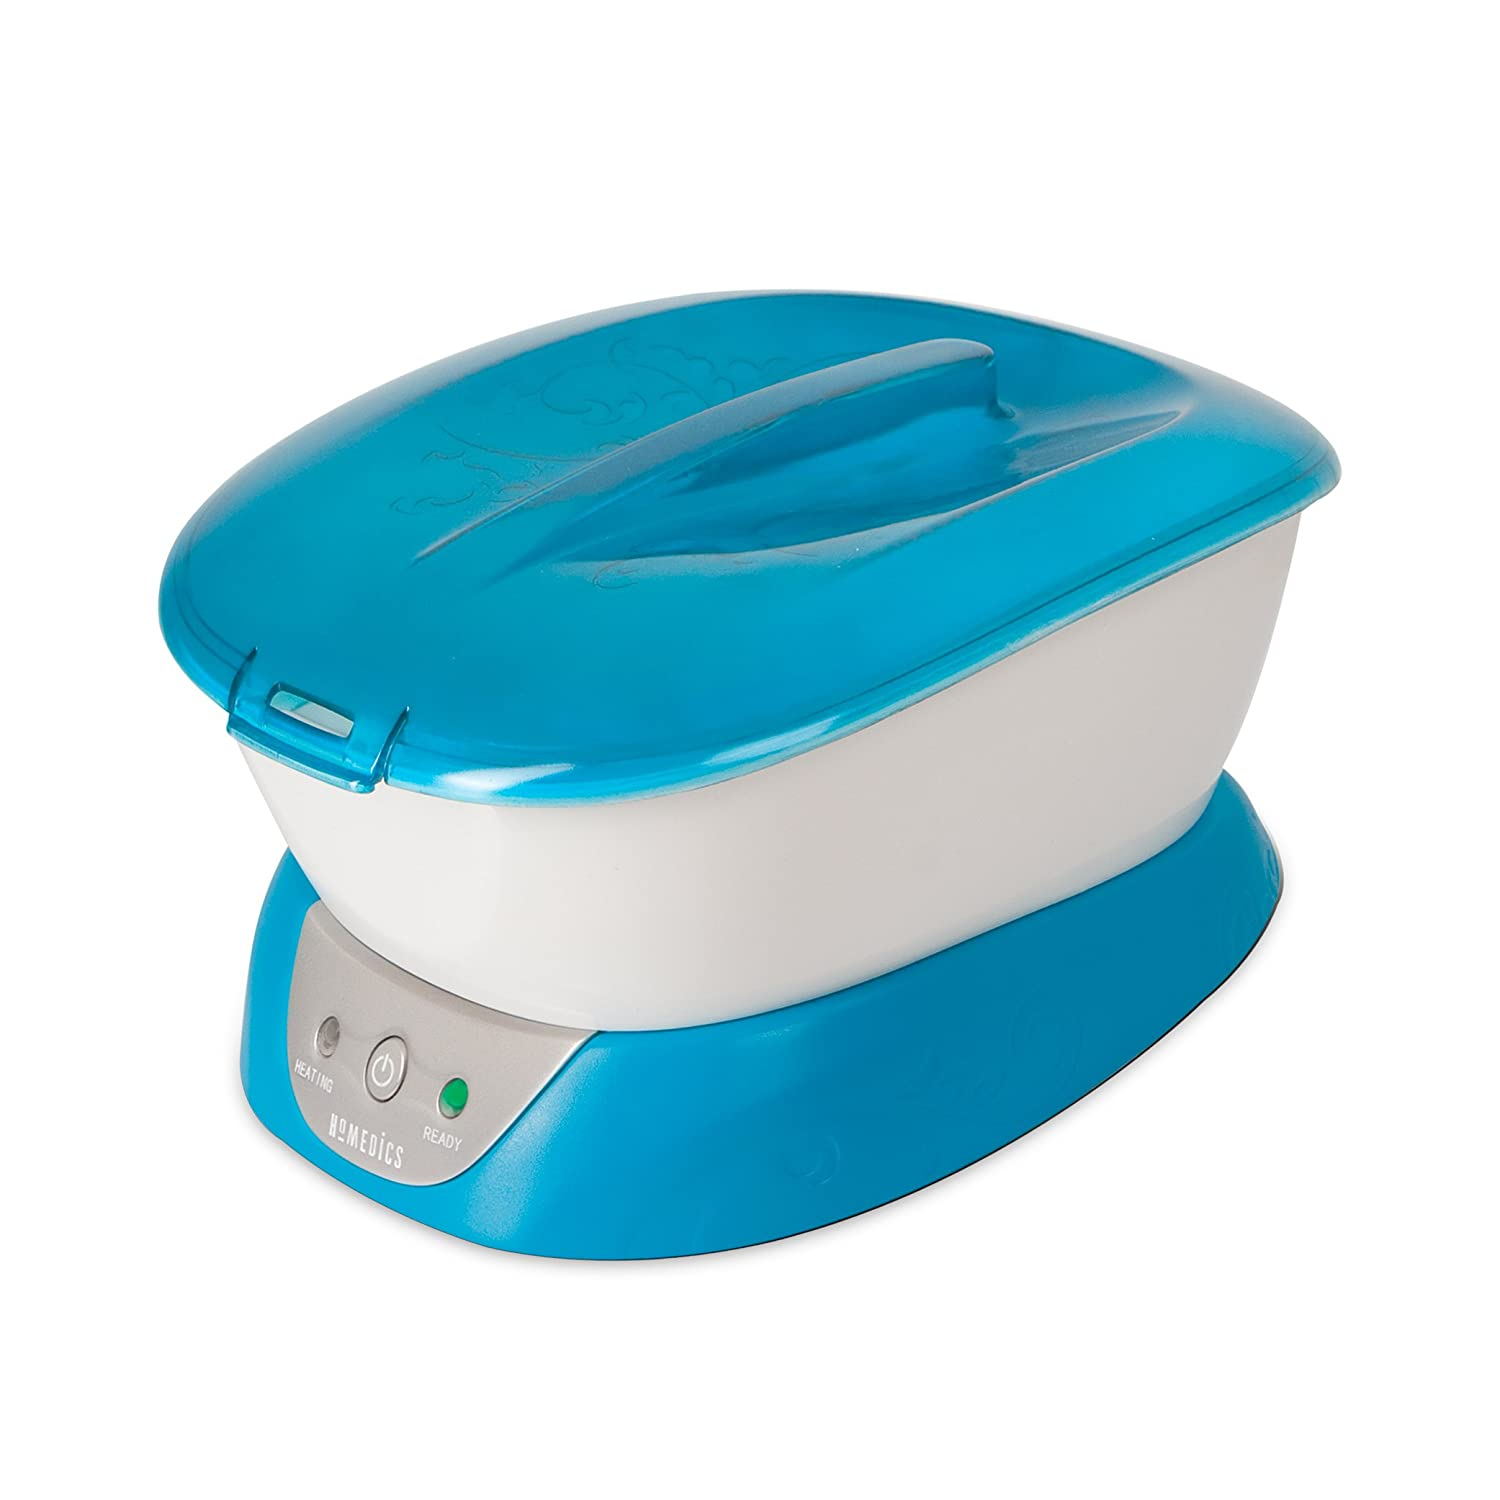 HoMedics ParaSpa Paraffin Wax Bath